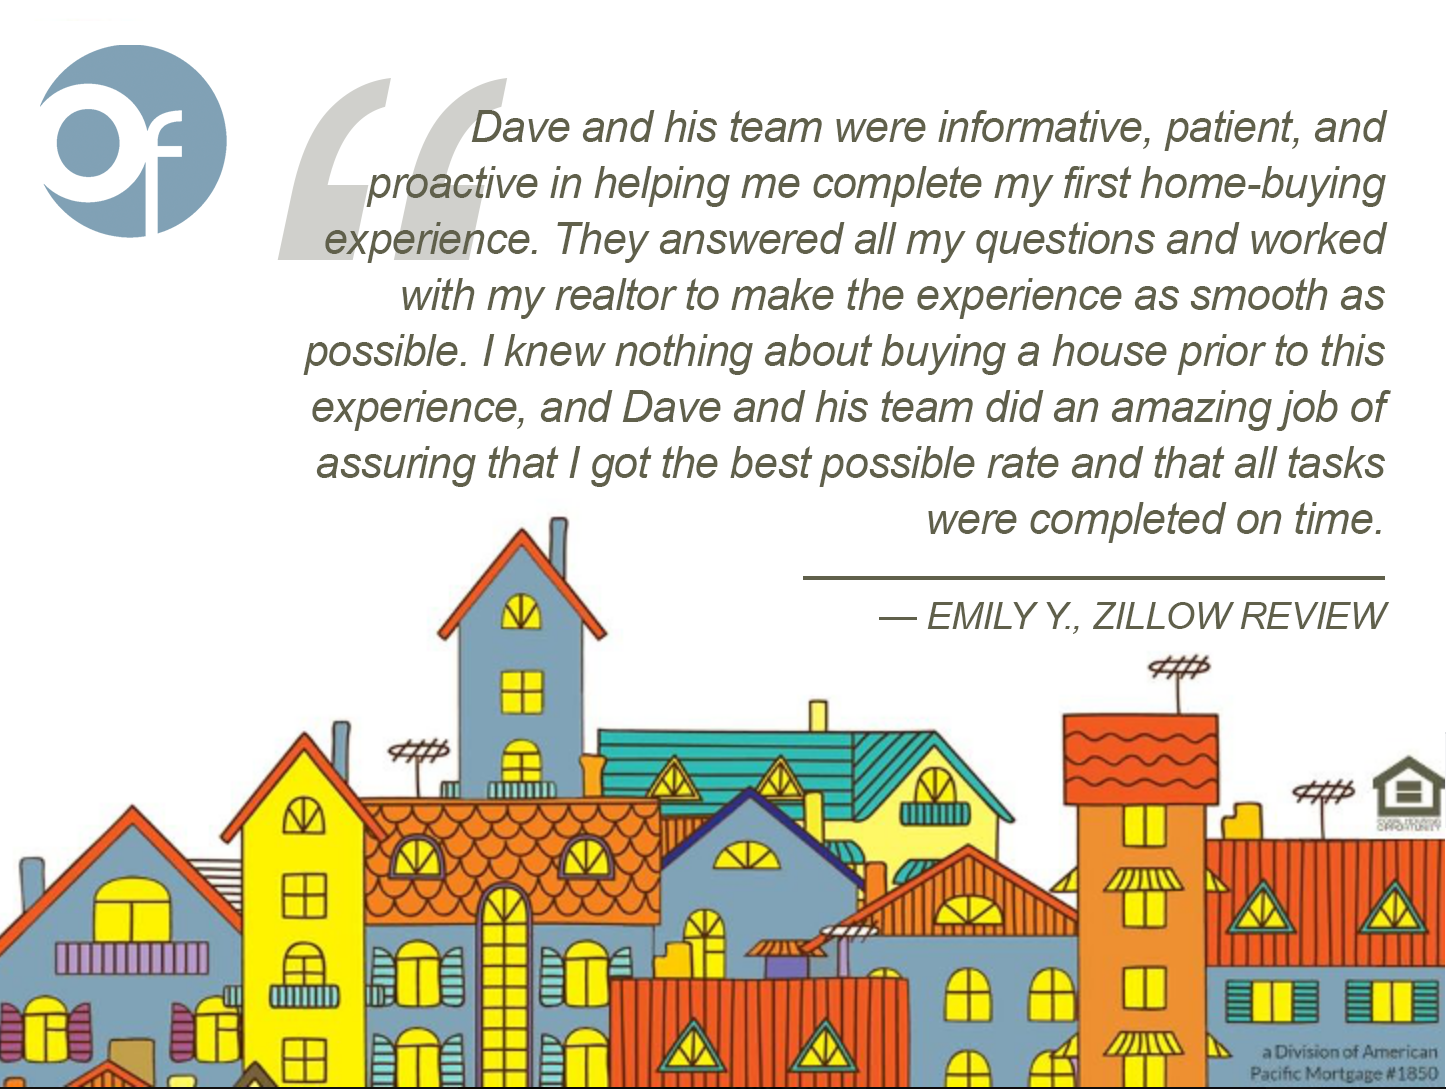 Dave and his team were informative, patient, and proactive in helping me complete my first home-buying experience. They answered all my questions and worked with my realtor to make the experience as smooth as possible. I knew nothing about buying a house prior to this experience, and Dave and his team did an amazing job of assuring that I got the best possible rate and that all tasks were completed on time.